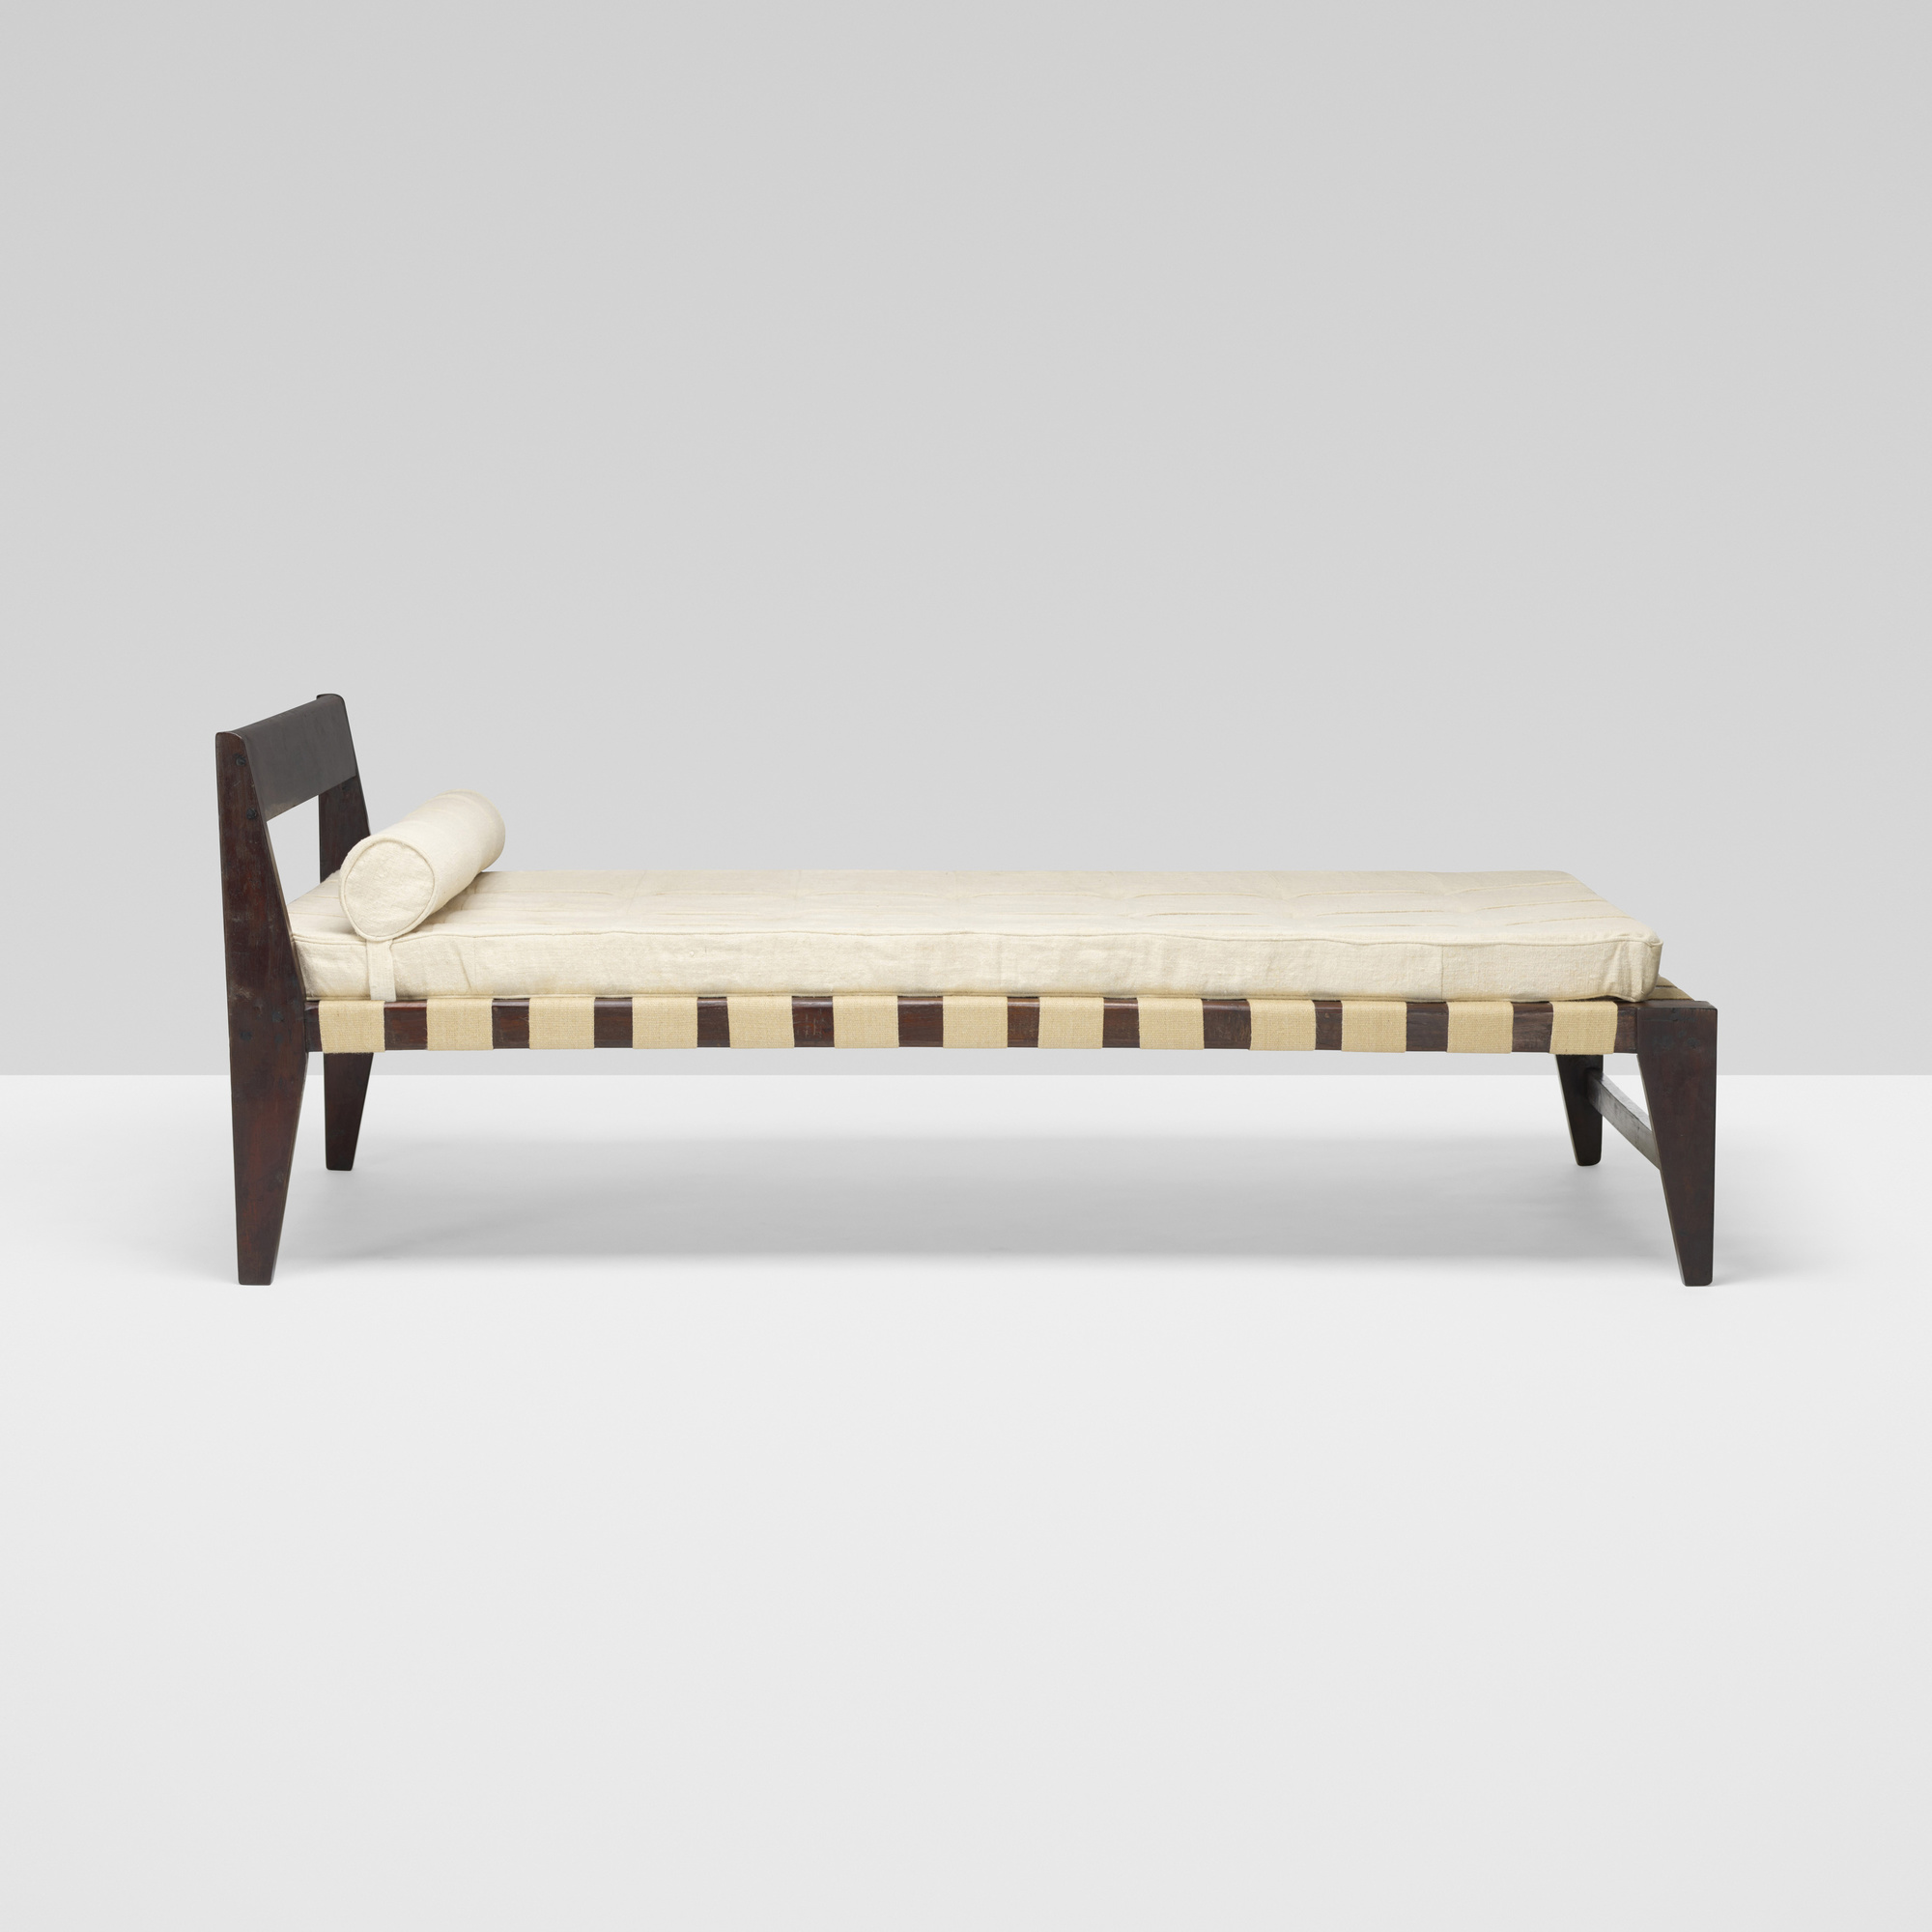 105: Pierre Jeanneret / daybed from Chandigarh (2 of 3)